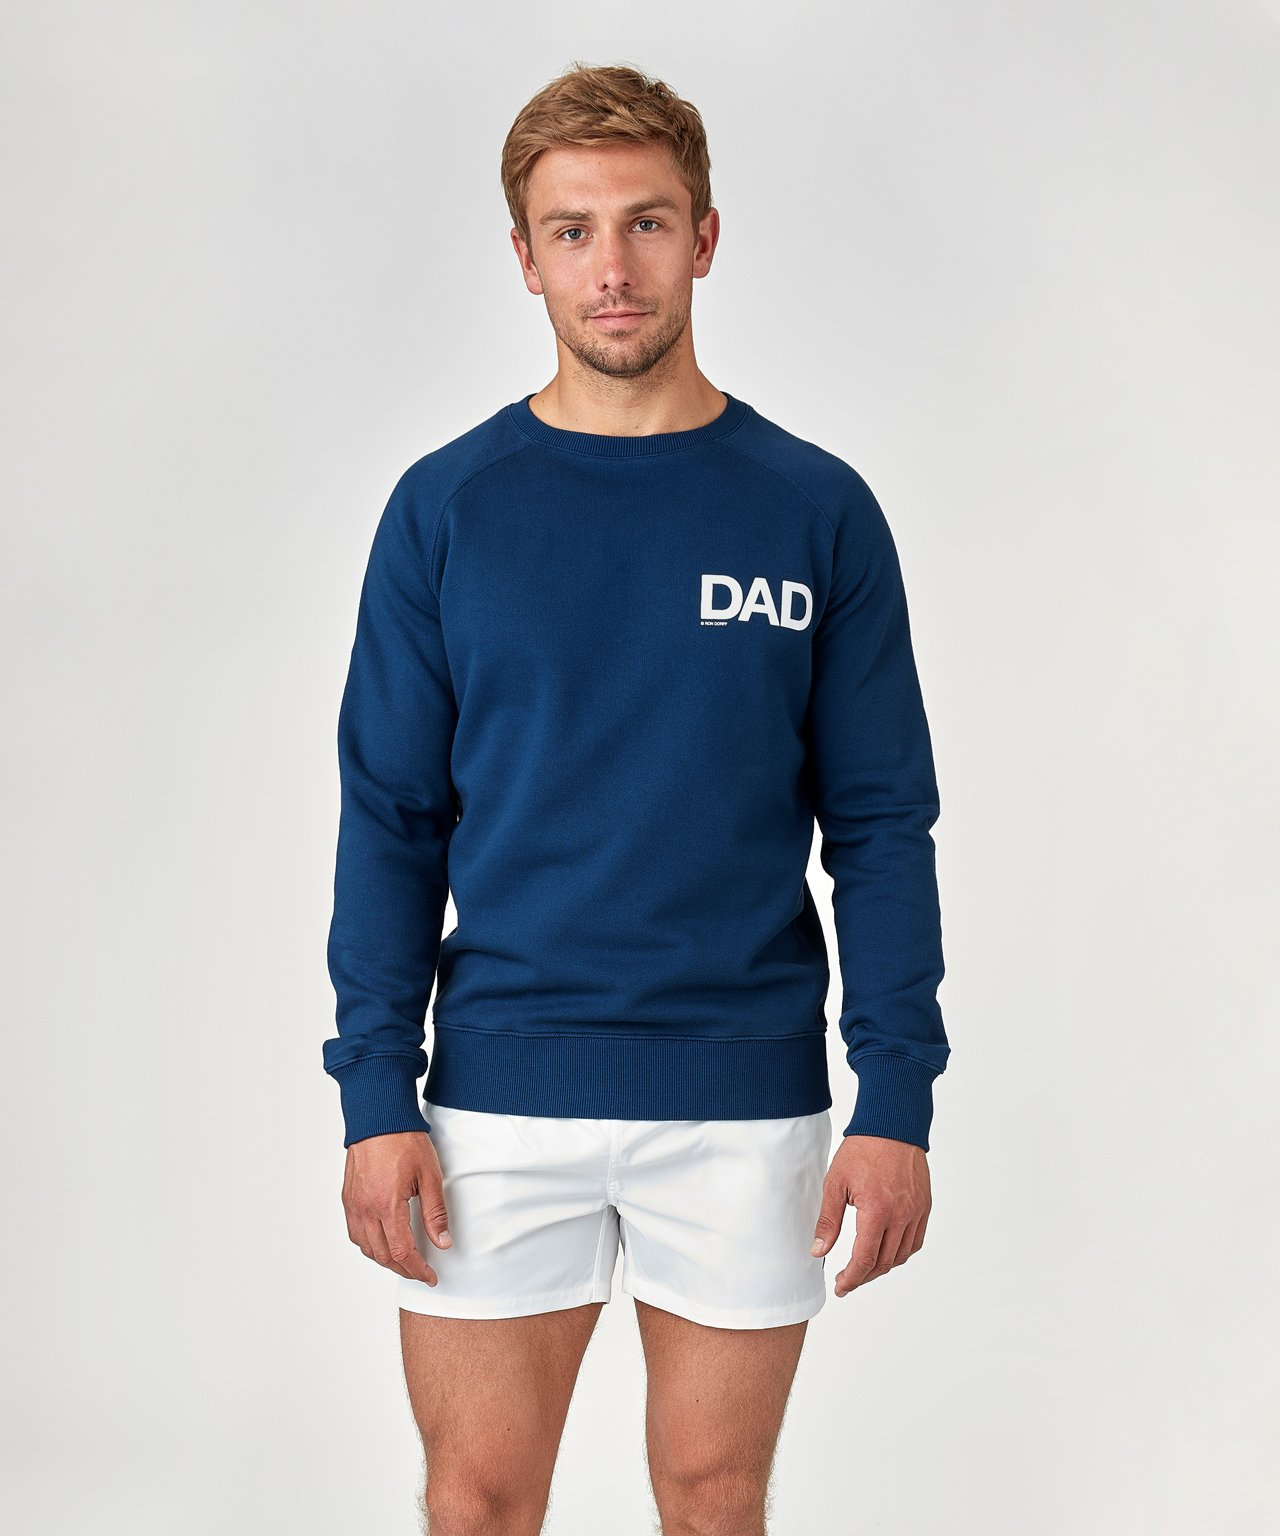 Sweatshirt DAD - viking blue